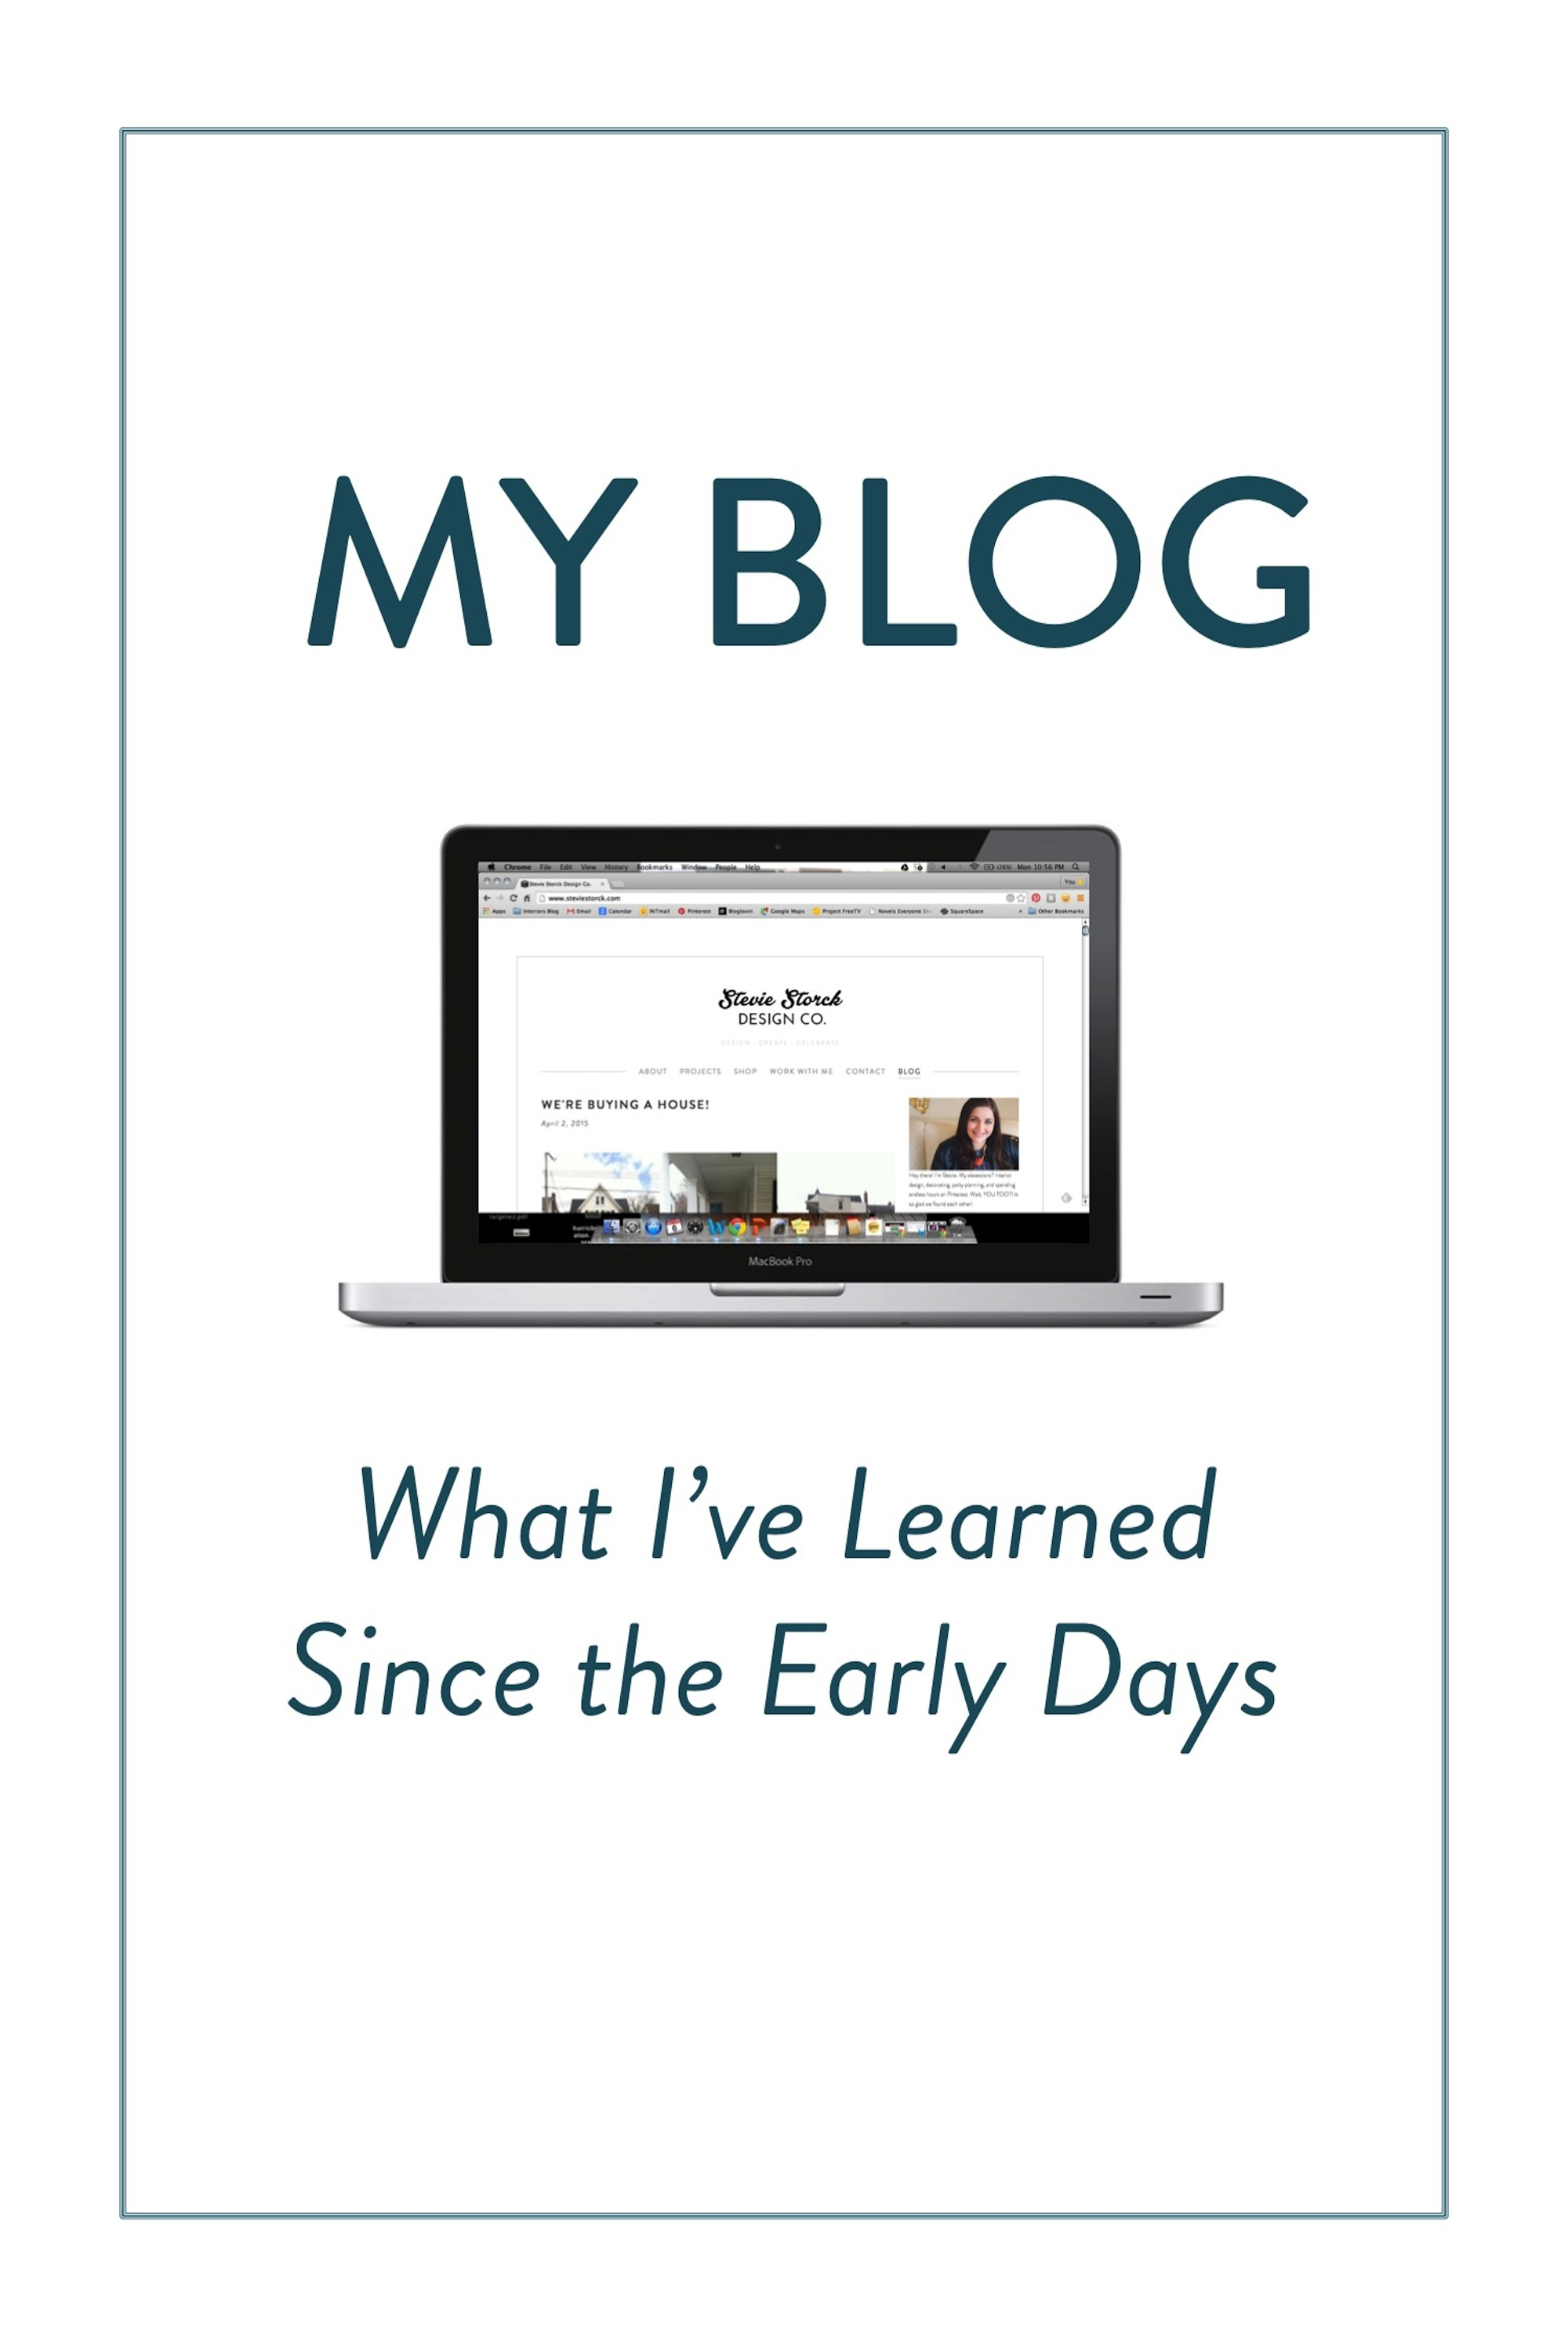 My blog: What I've Learned Since the Early Days. 3 blogging tips I wish I would have known when I first started a blog - Stevie Storck Design Co.